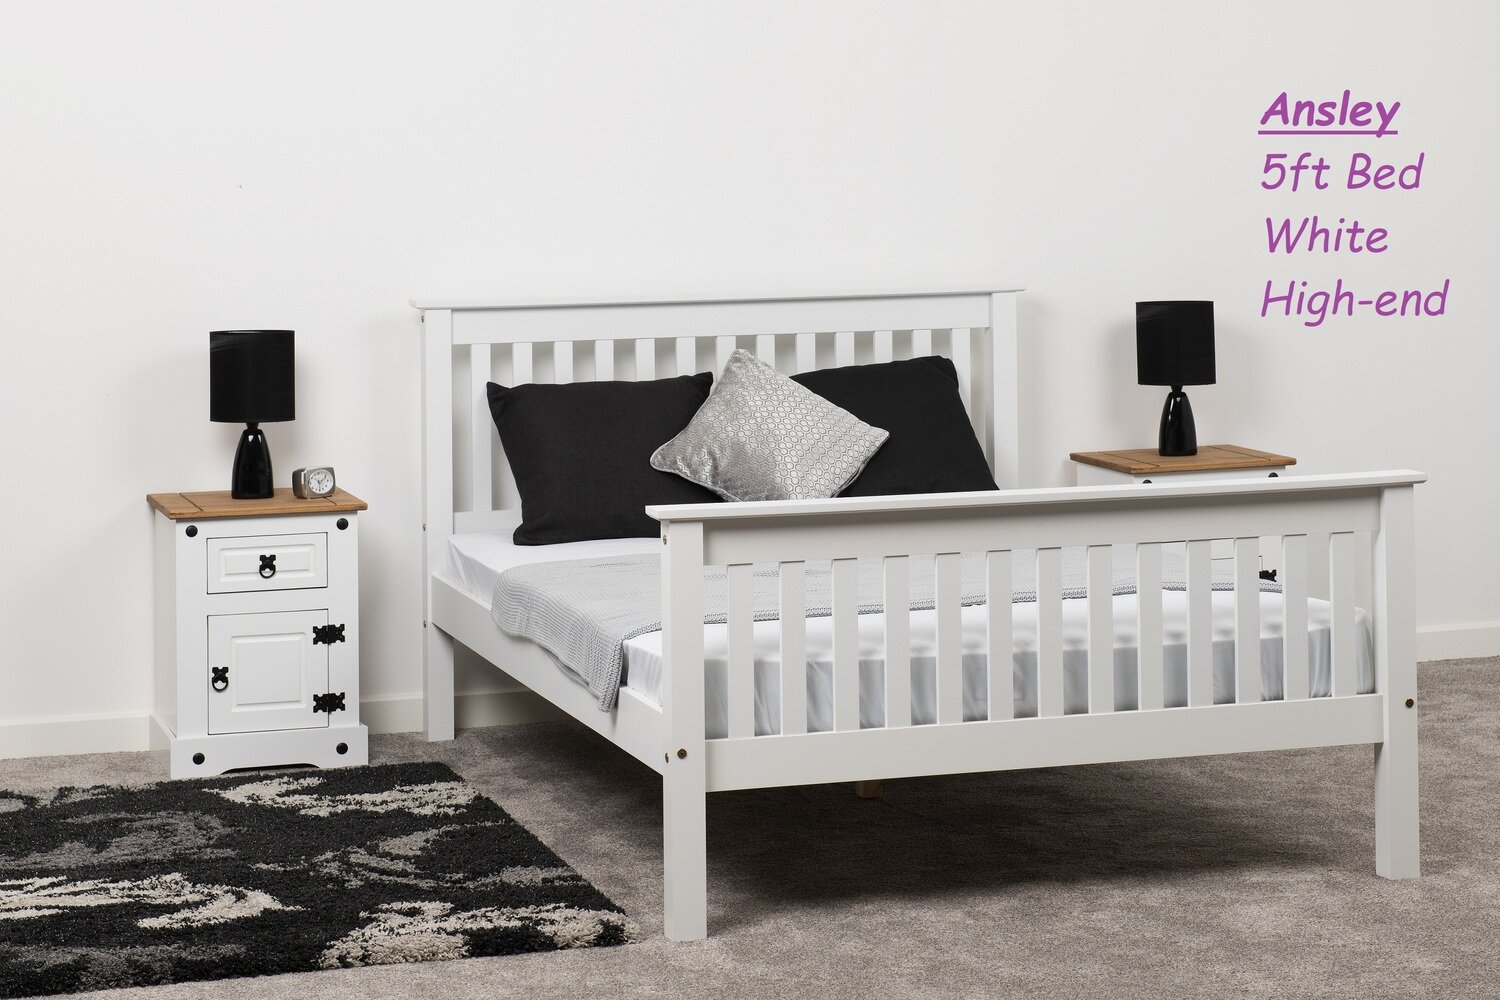 Ansley 5ft Bed White High-end